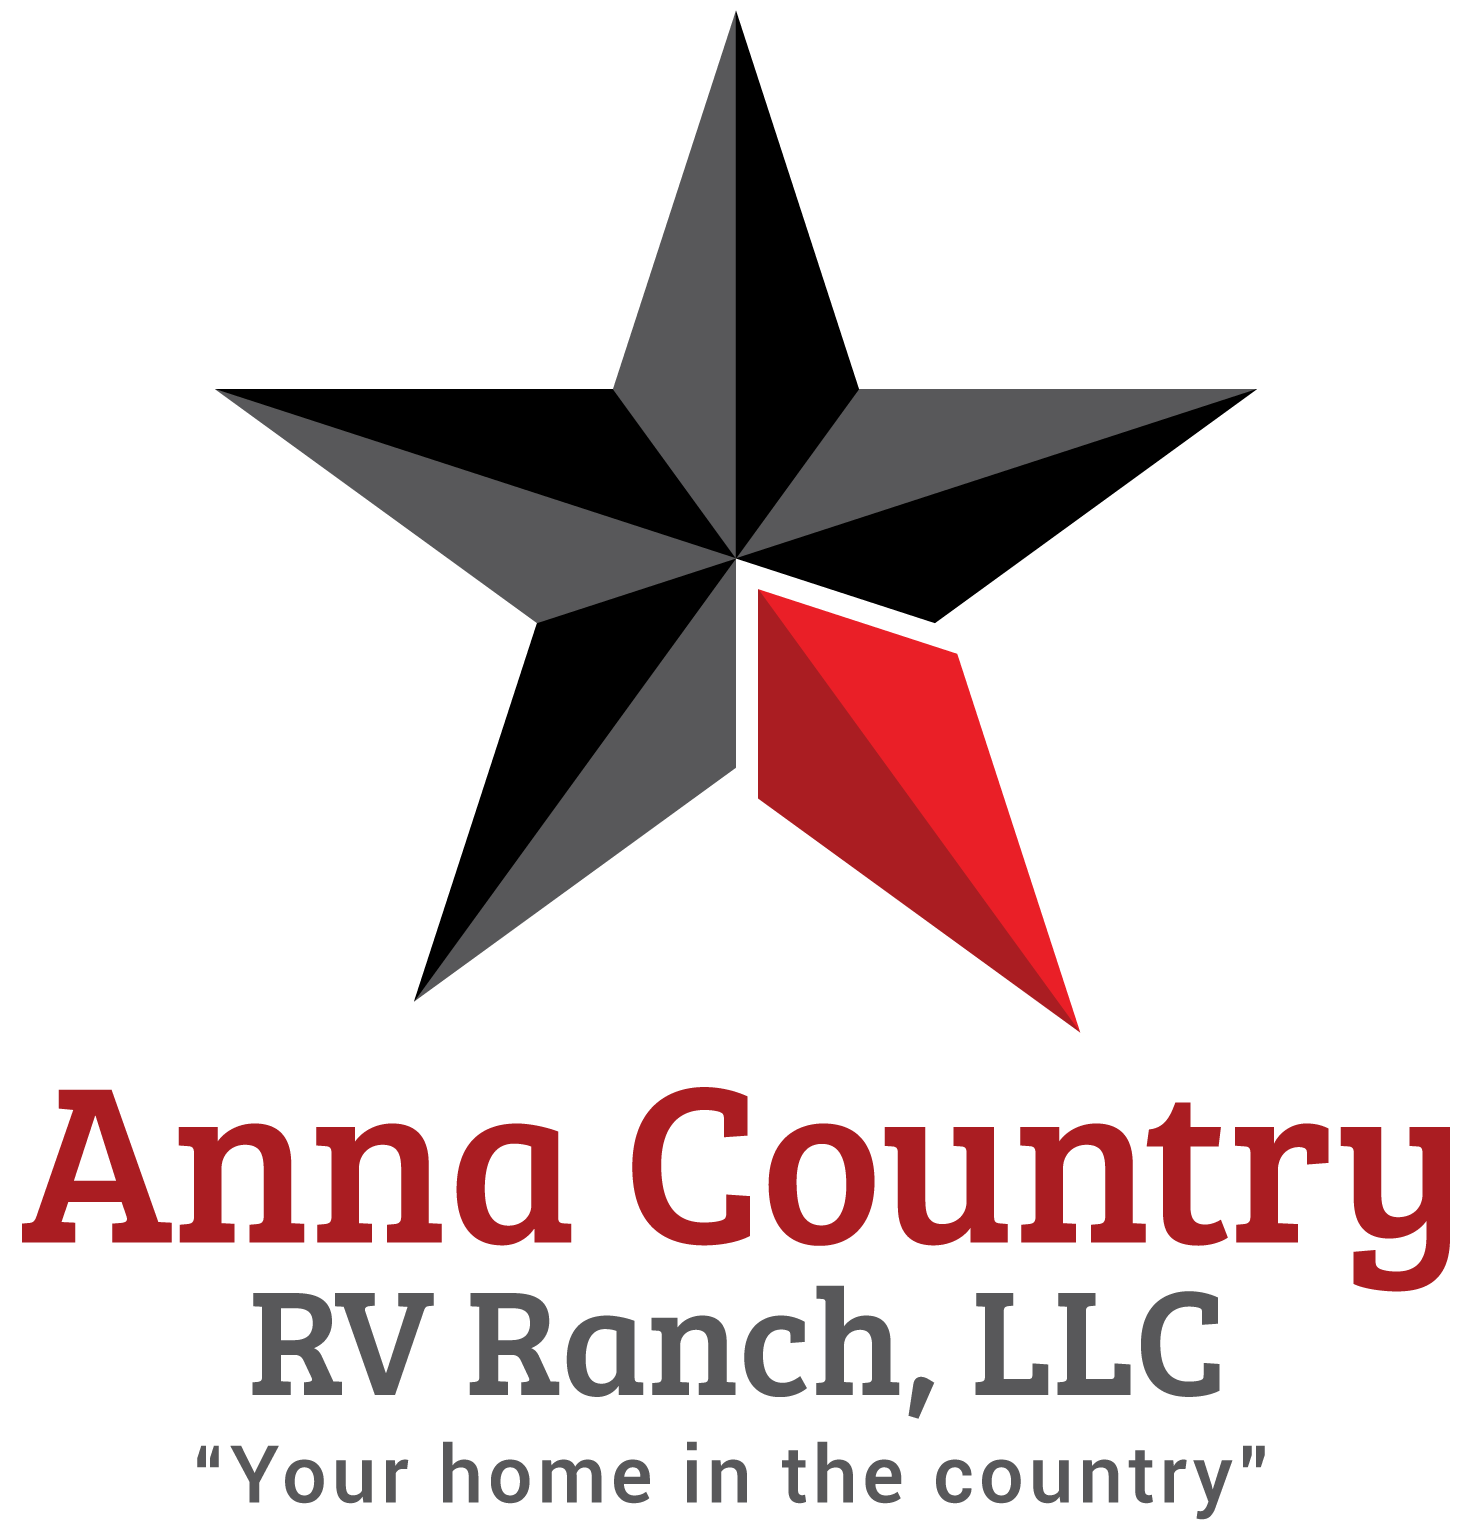 Anna Country RV Ranch